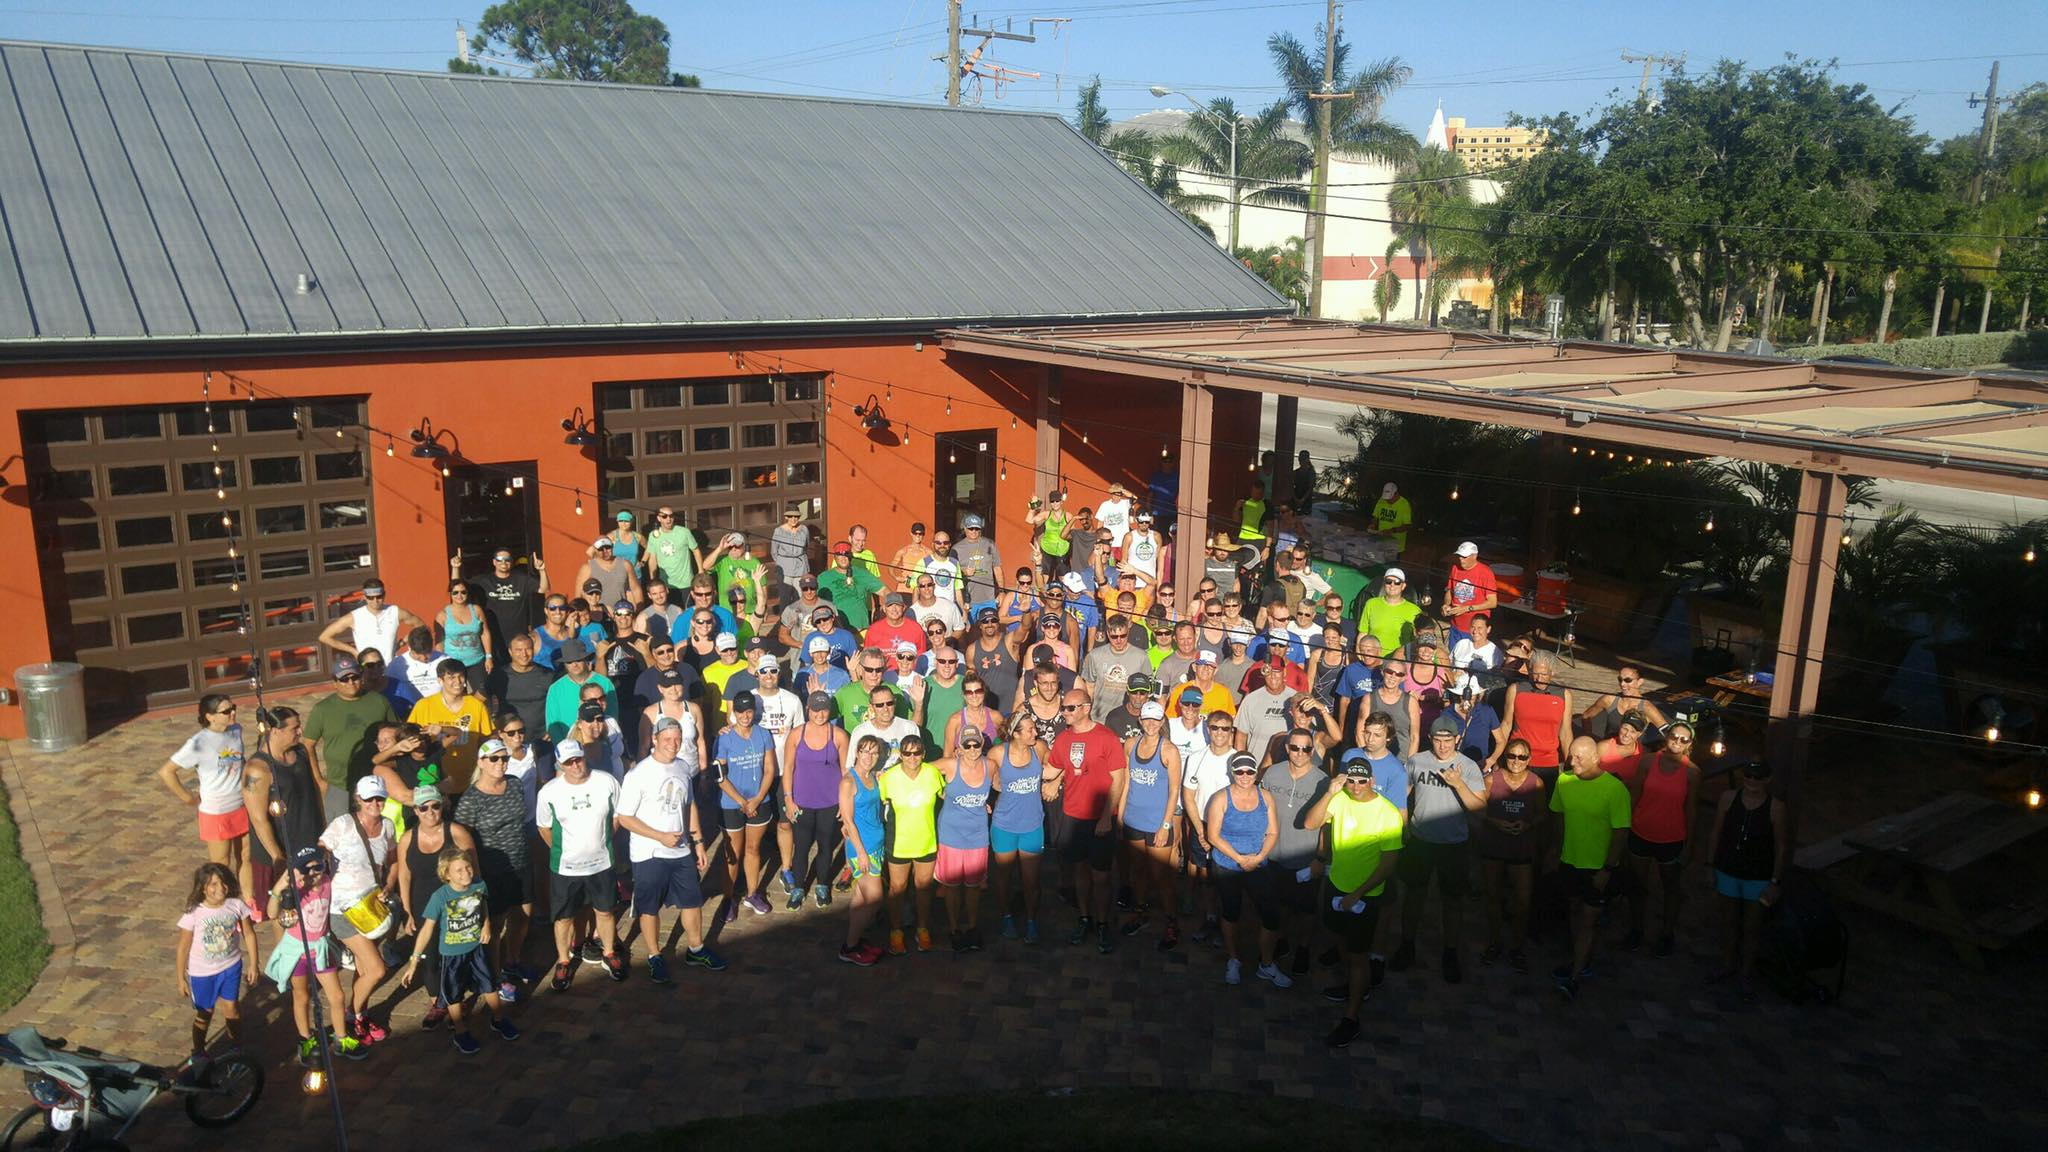 Intra Run Club - Intra Run Club started in Nov 2015. We start our 1 mile or 3 mile route at Intracoastal Brewing Company. We run/jog/walk over the Eau Gallie Causeway and make it back to enjoy a tasty beverage together. The run is every Wednesday at 5:30pm. Once we SPRING FORWARD the run changes to 5:45pm. Sign up now Every 10 runs receive a free beer.